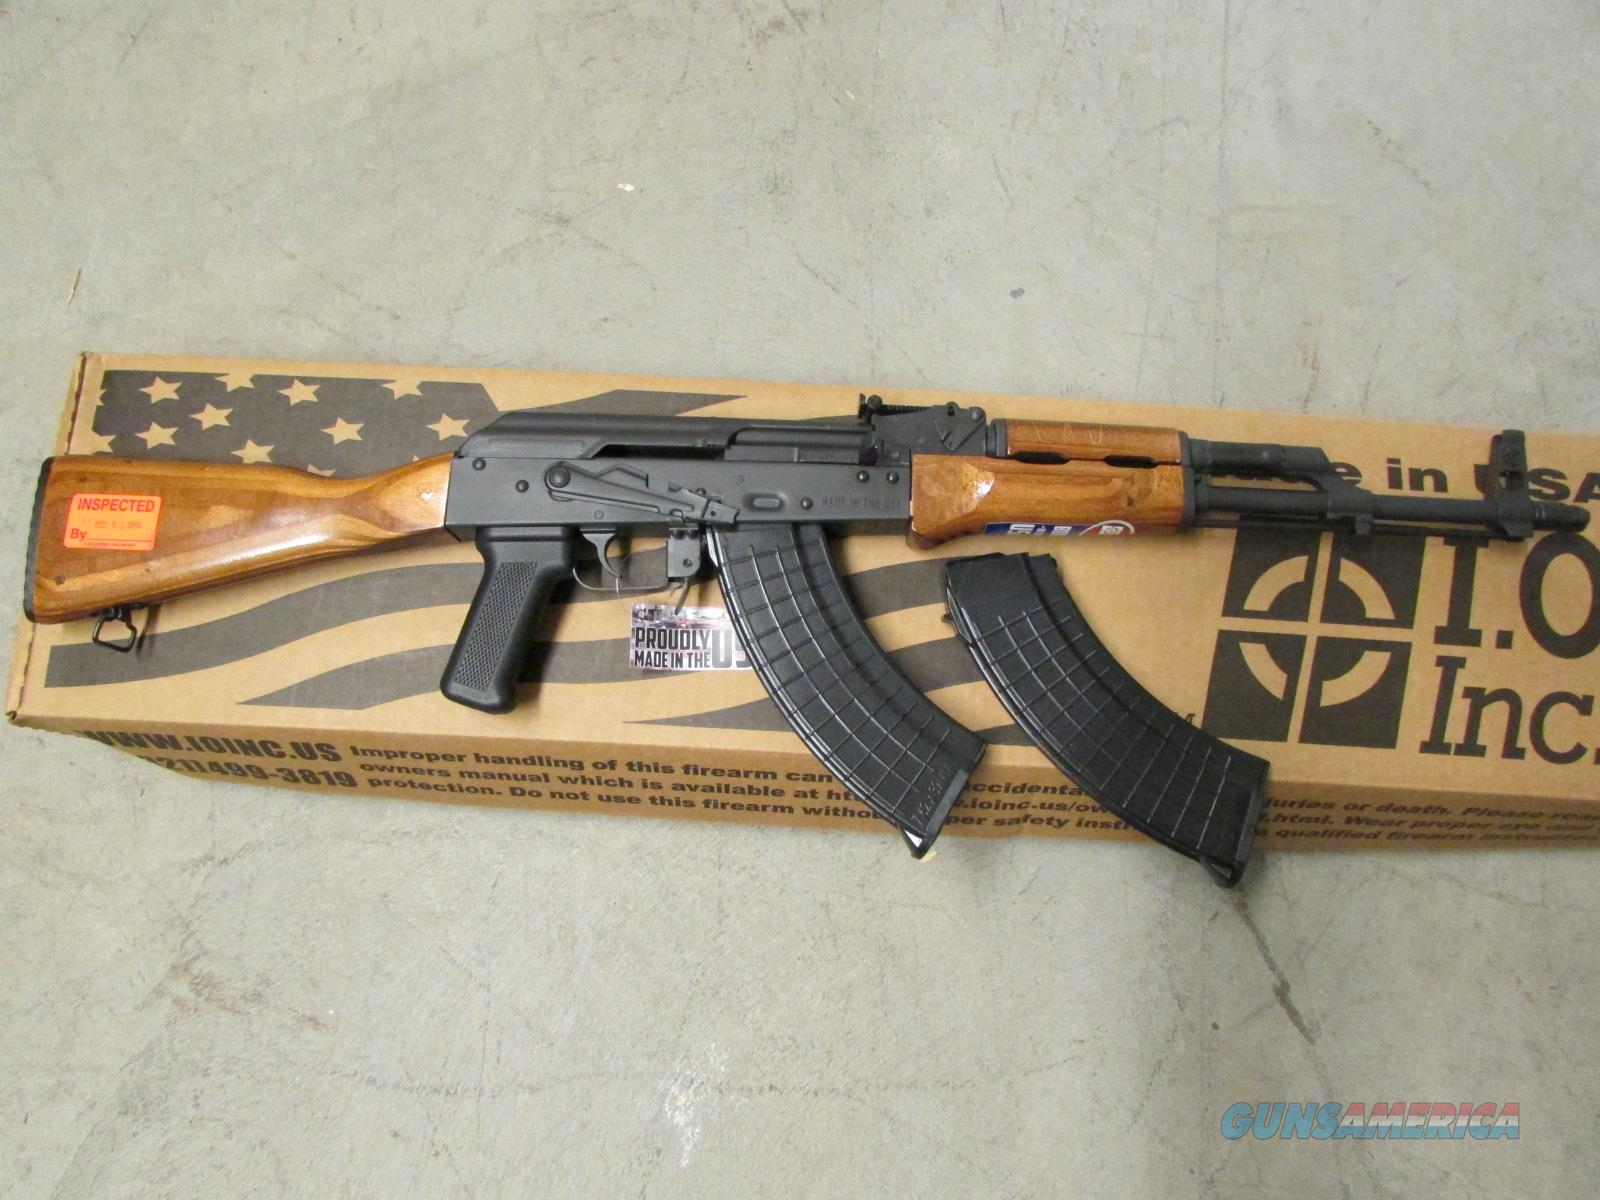 IO INC. AKM247C AK-47 7.62X39 WOOD STOCK SKU: IODM2008  Guns > Rifles > AK-47 Rifles (and copies) > Full Stock